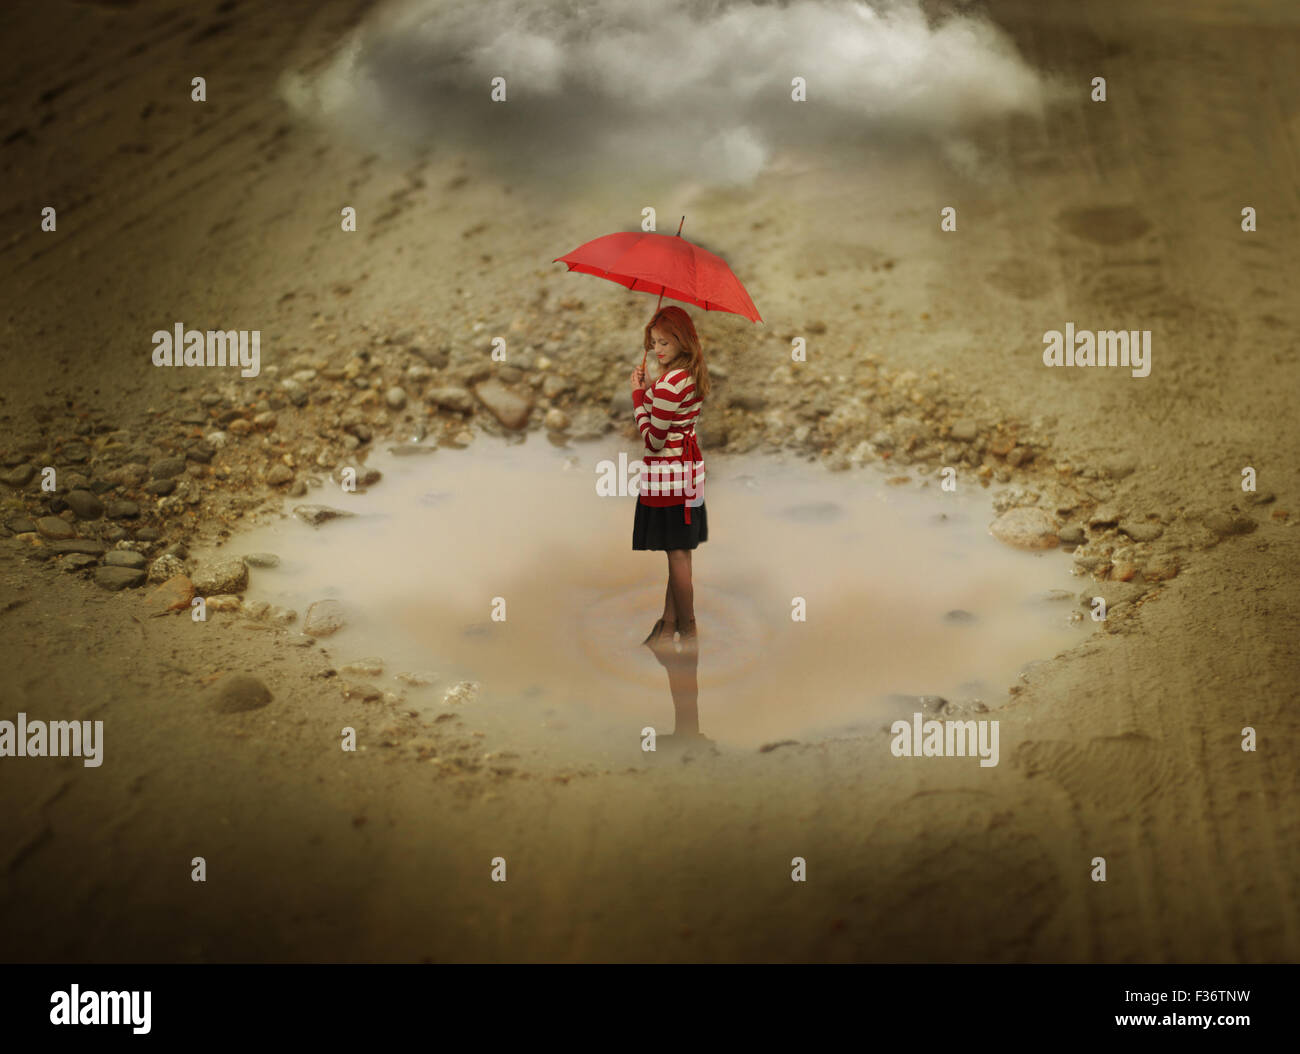 Miniature girl looking down standing in a puddle with a red umbrella with a big cloud - Stock Image